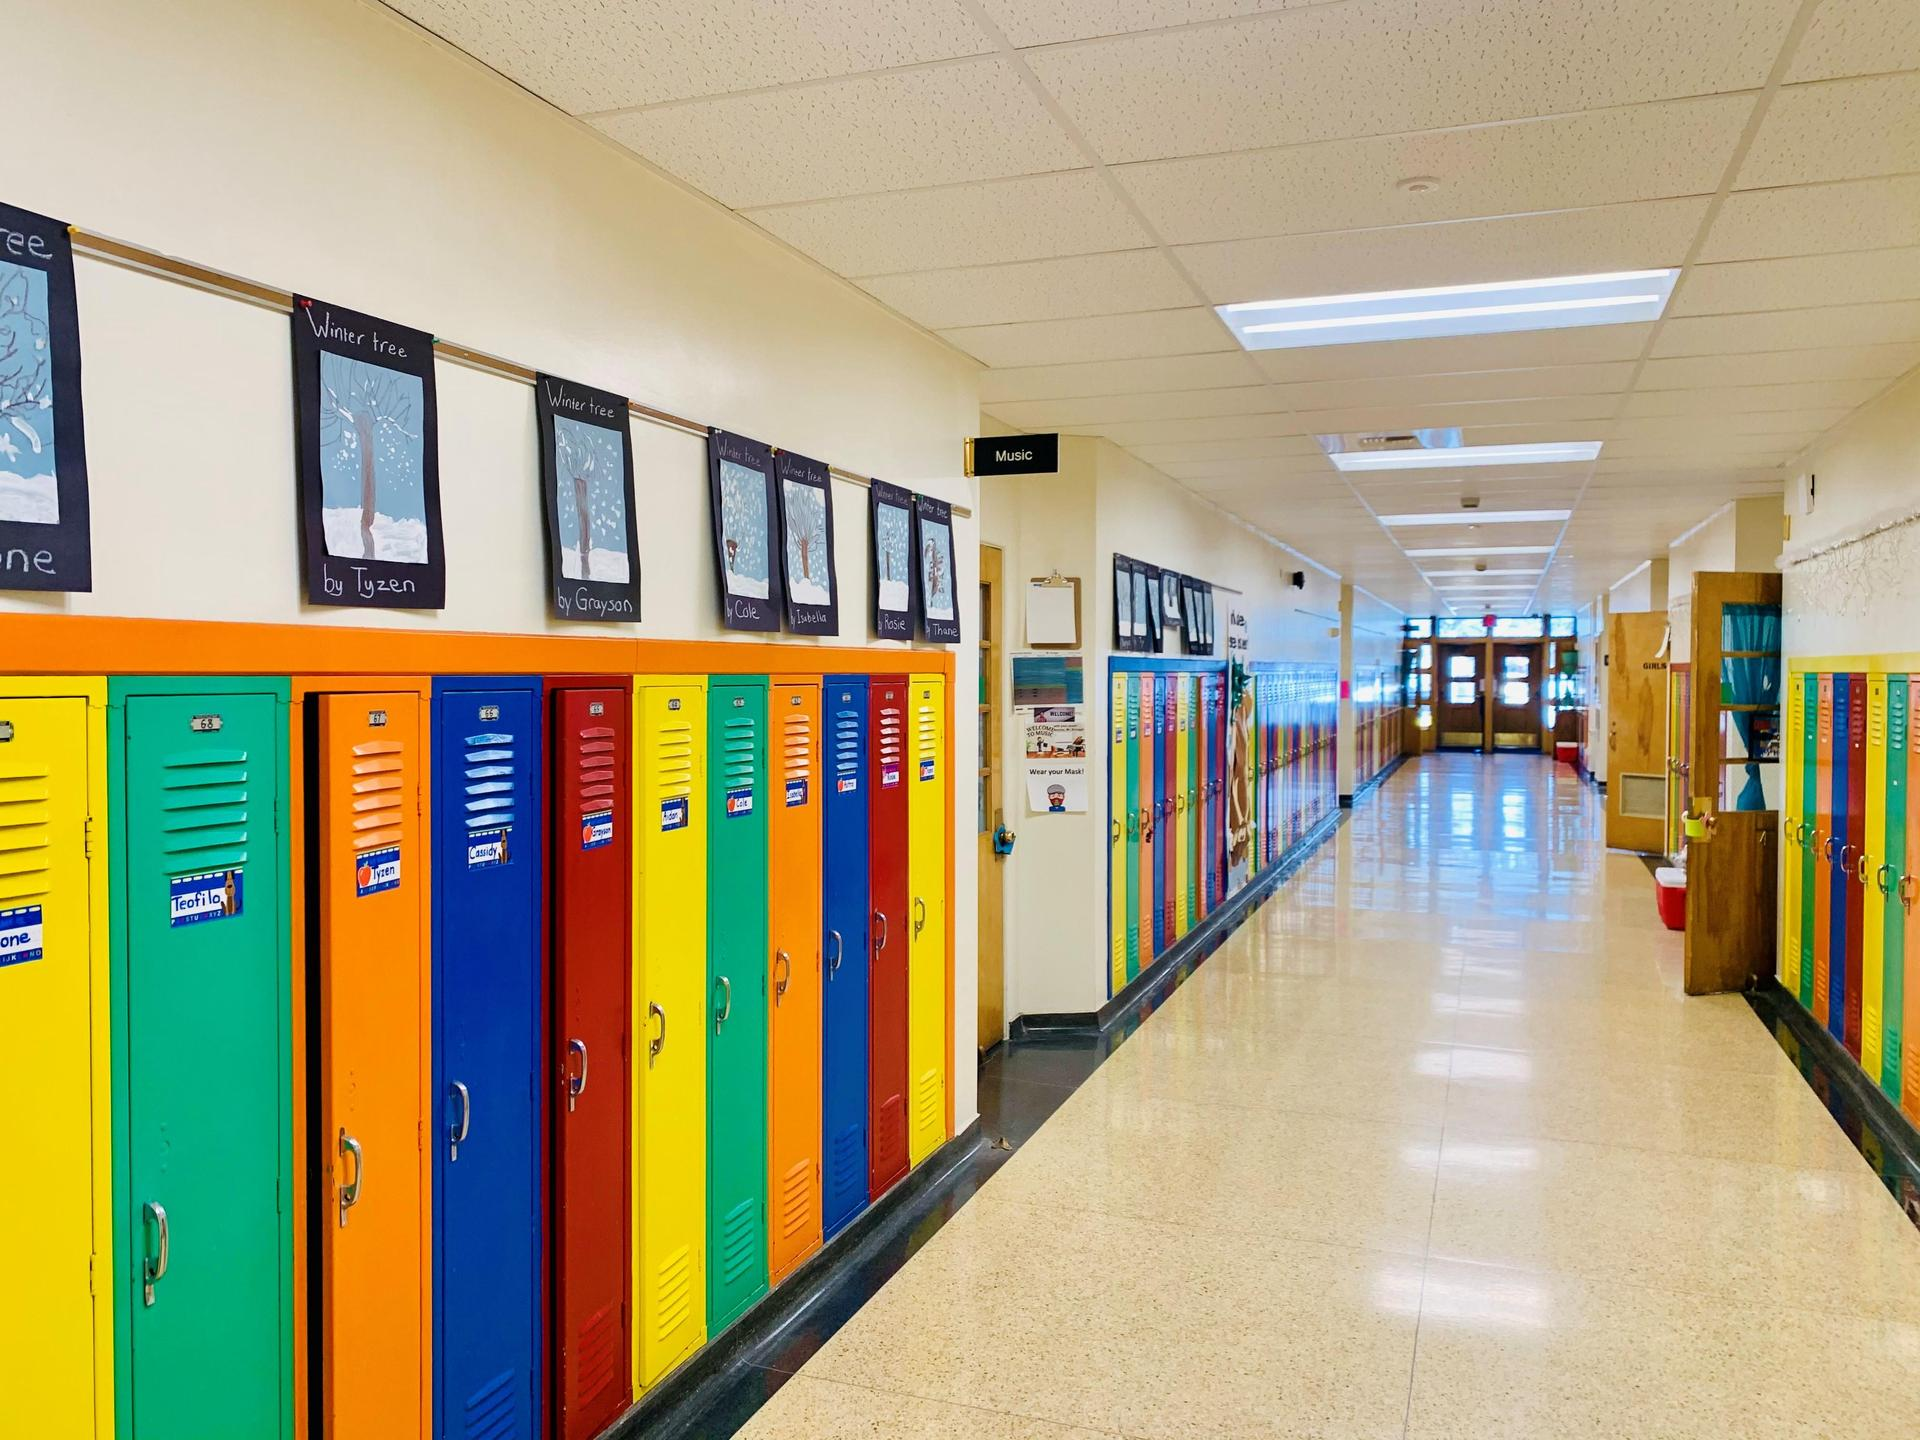 Colorful lockers and school hallway